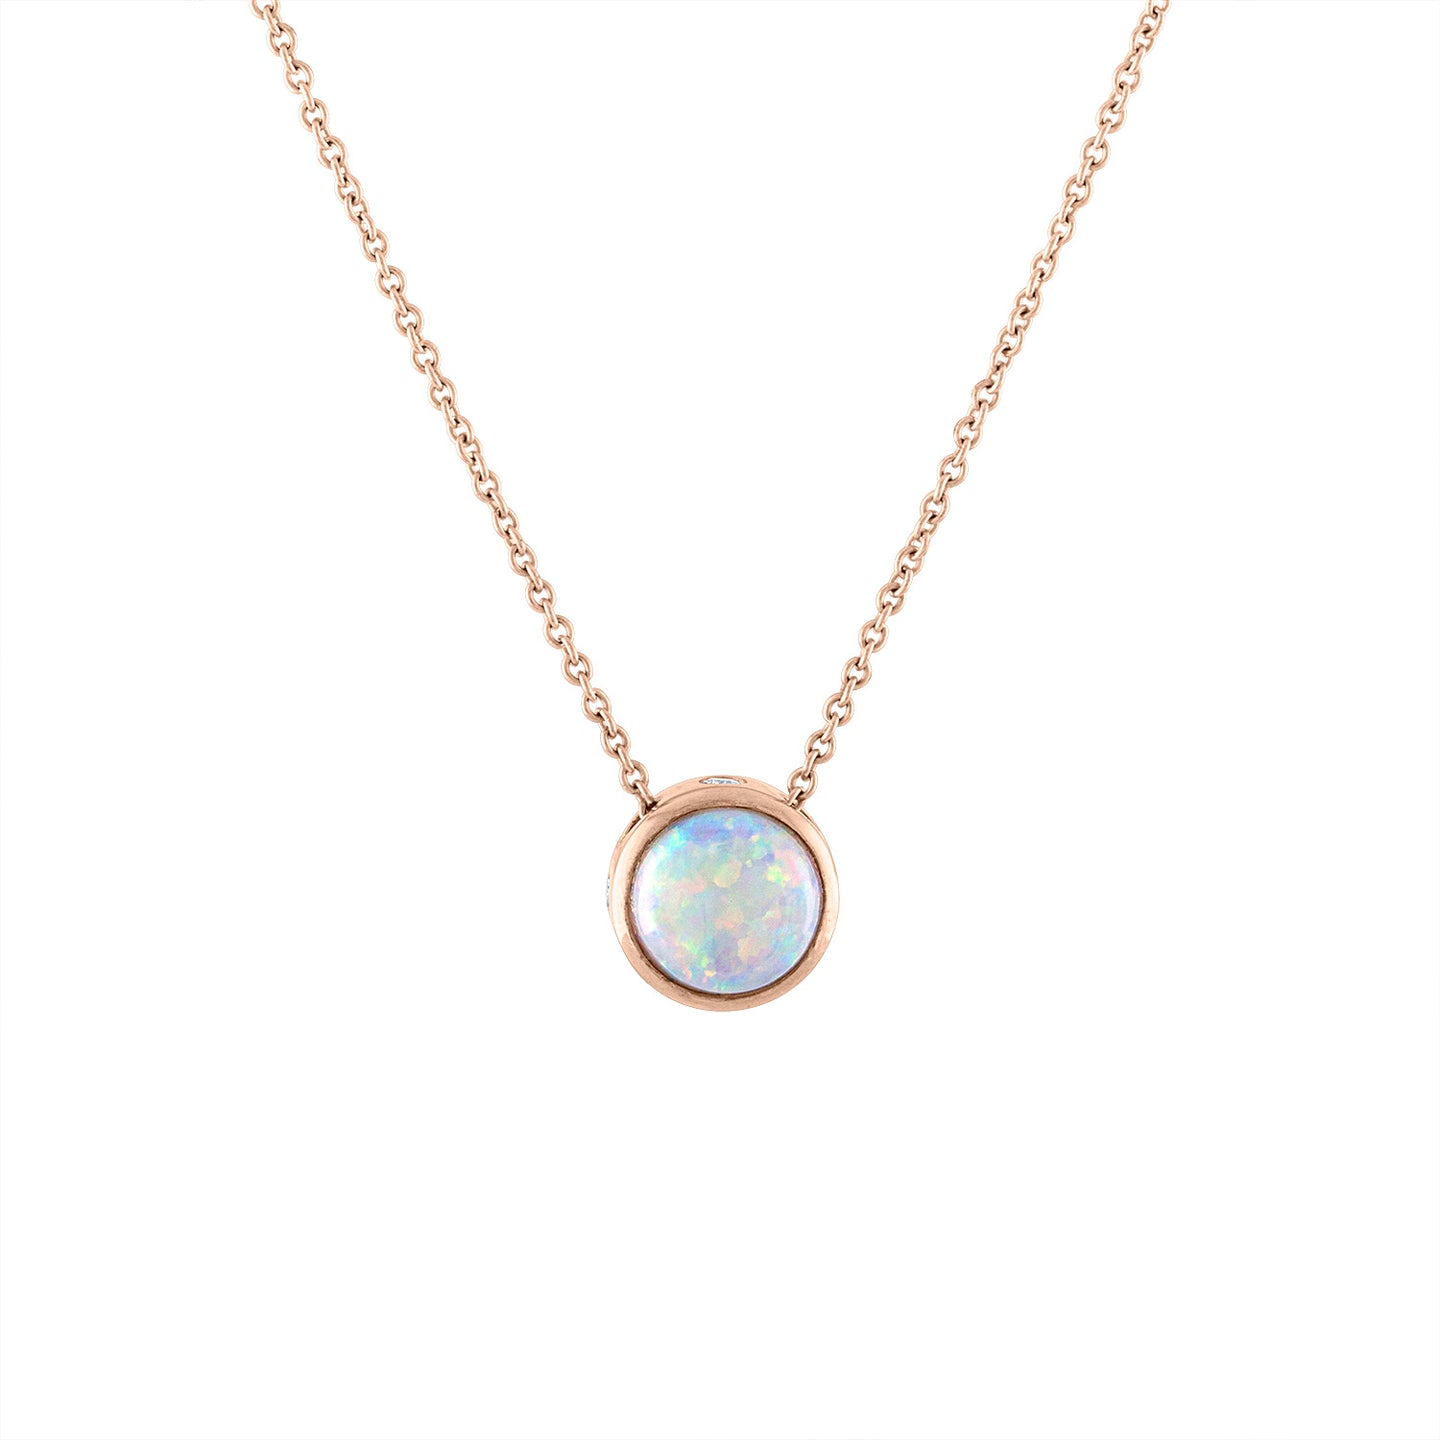 Sabel Collection 14K Rose Gold Bezel Set Opal Pendant with Diamond Inlay Accent